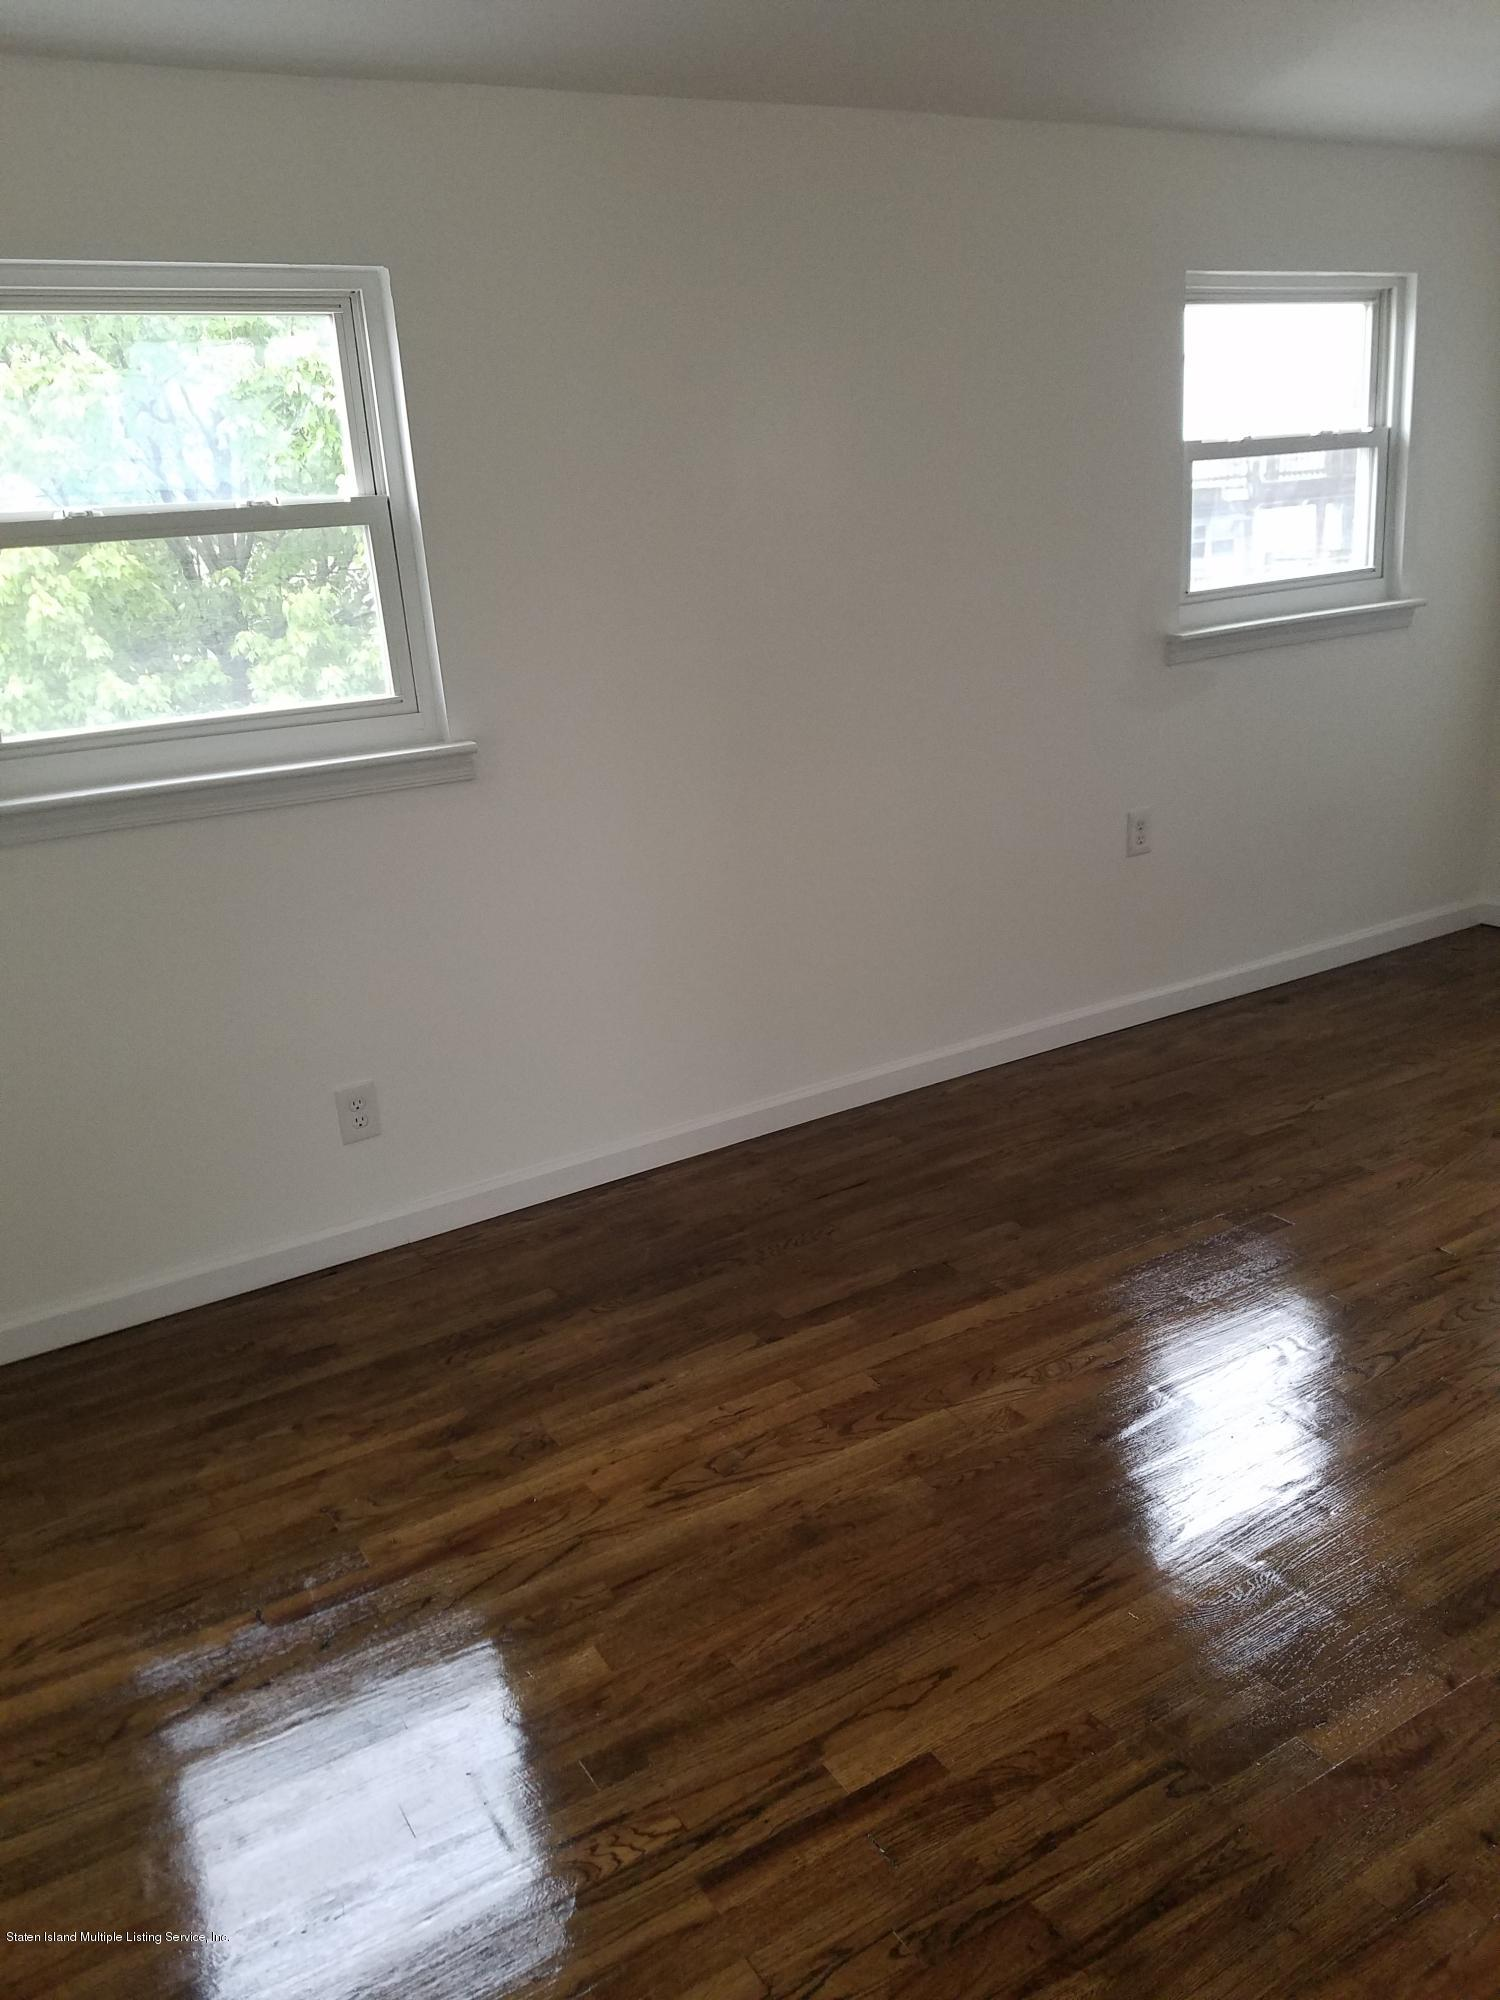 47 Kingsbridge Avenue,Staten Island,New York,10314,United States,3 Bedrooms Bedrooms,6 Rooms Rooms,3 BathroomsBathrooms,Res-Rental,Kingsbridge,1129270